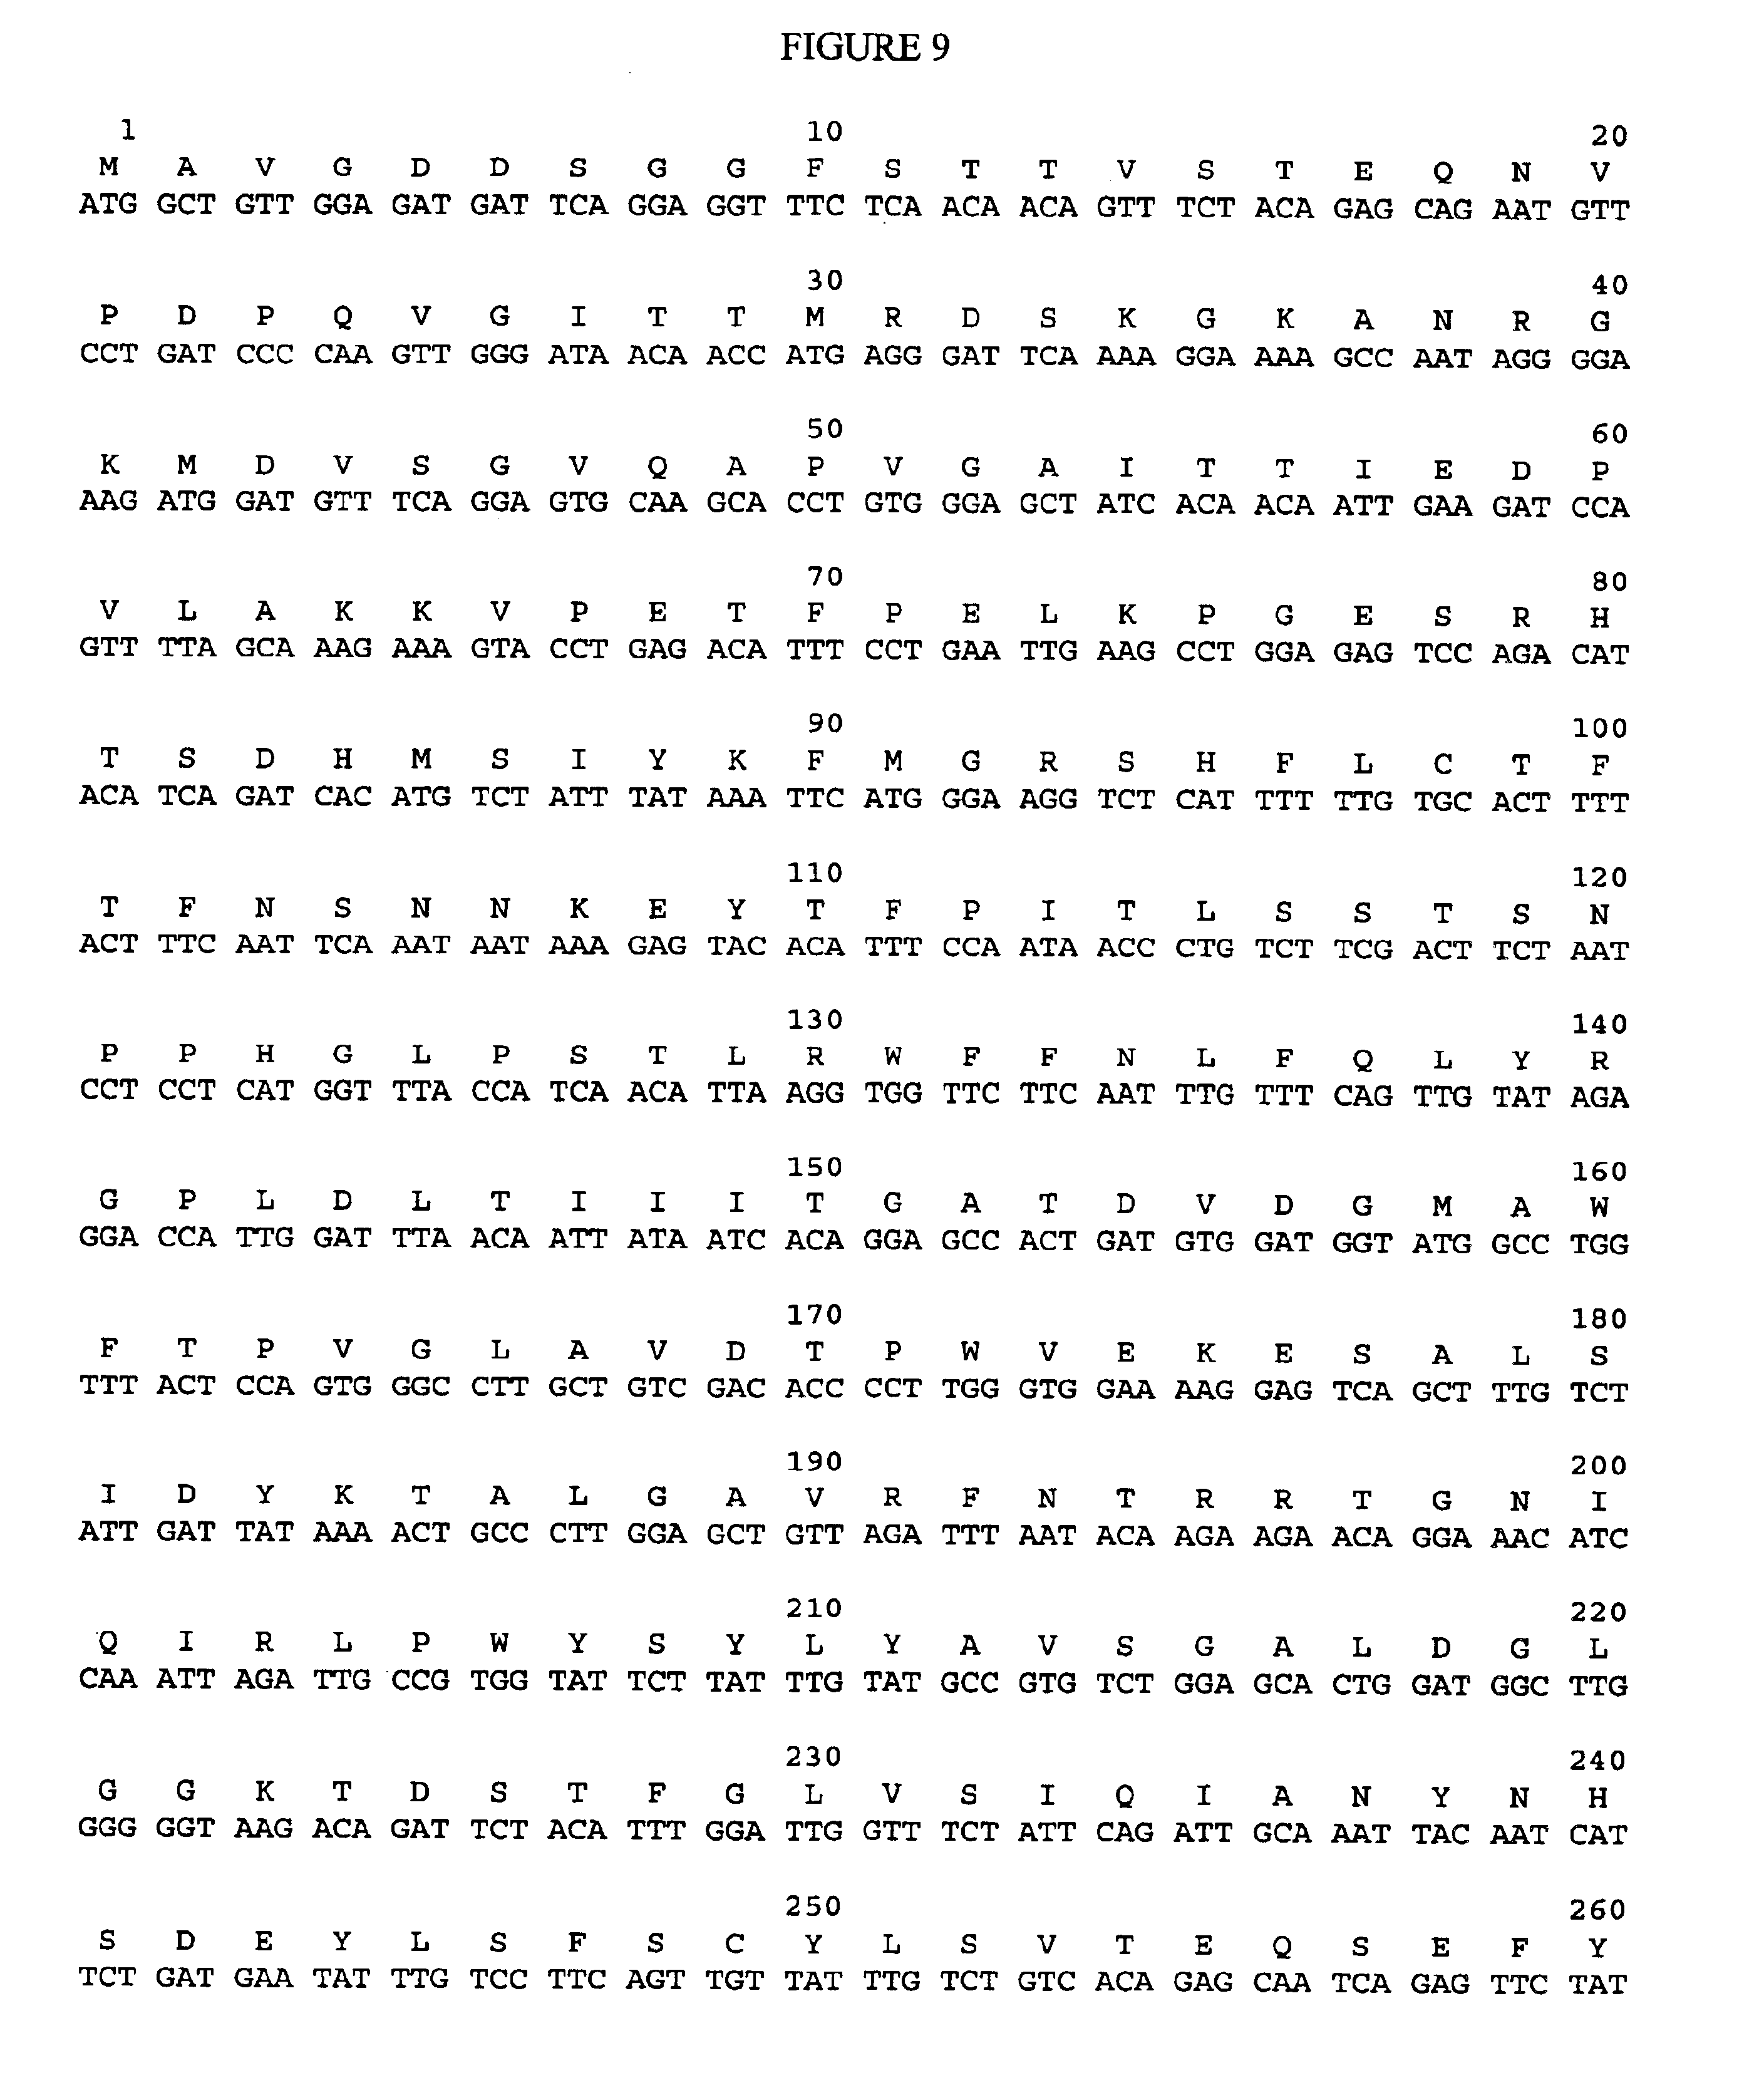 nucleotide sequences